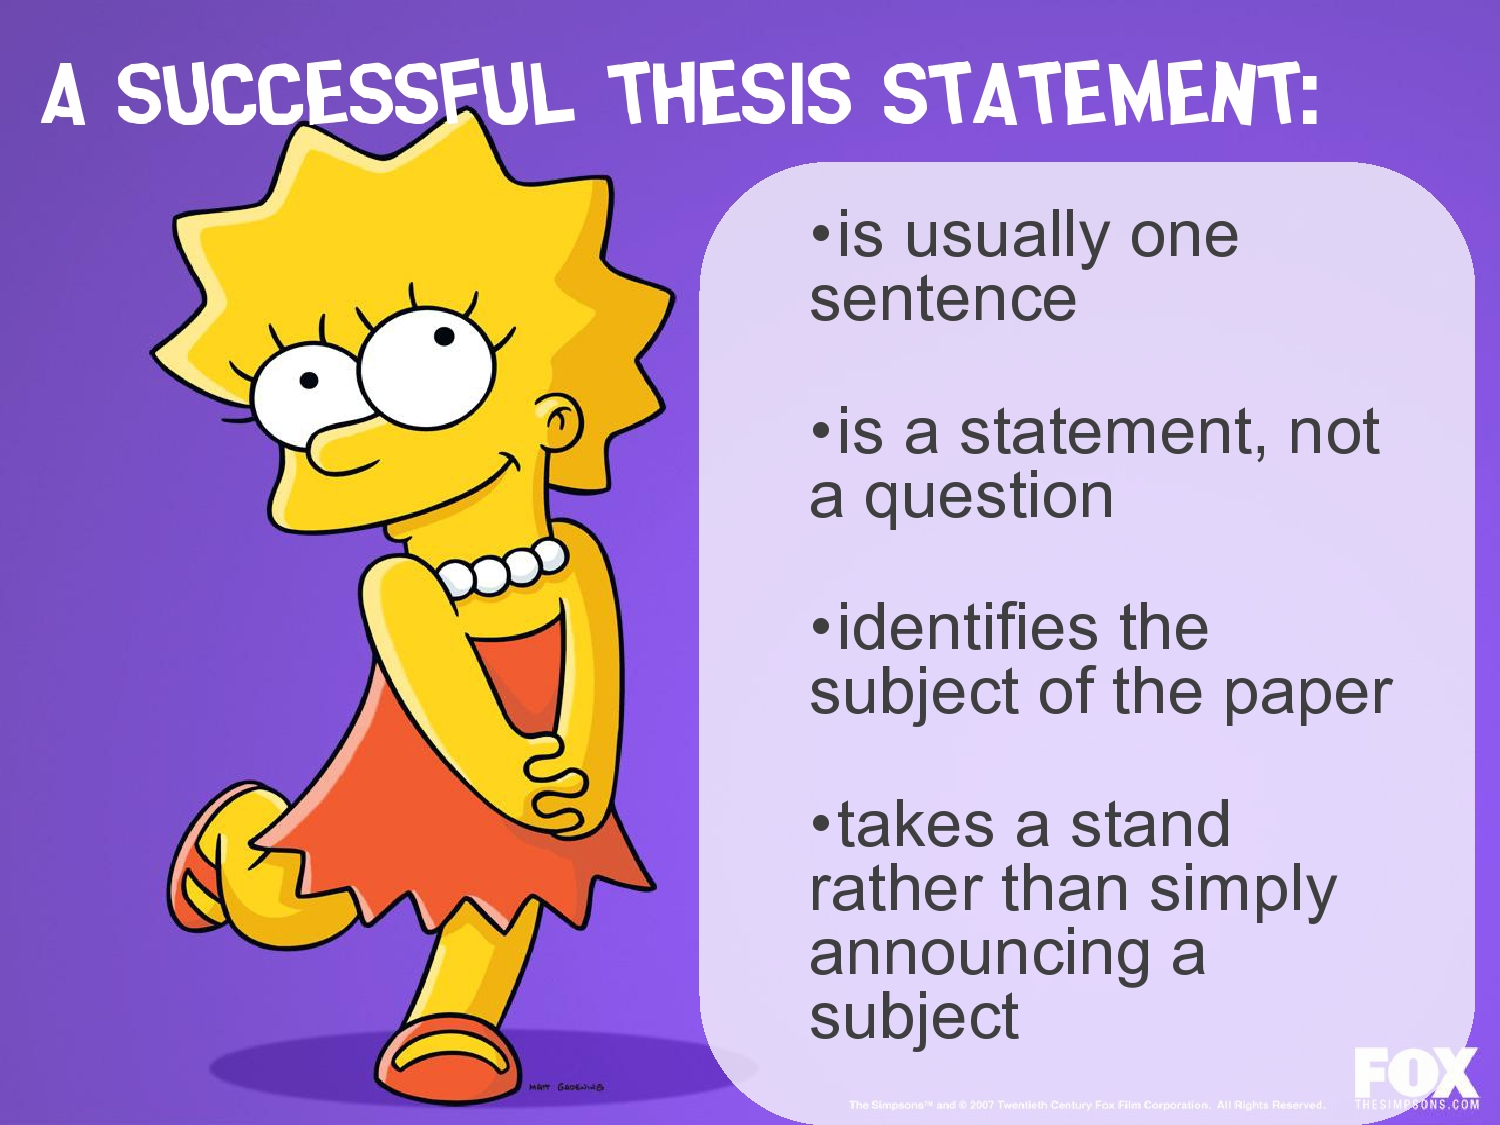 Essay Writers Service Lisathesis Steps To Write A Persuasive Essay also Why Uchicago Essay Writing Essays  Introductions  Alan Barker Why Voting Is Important Essay